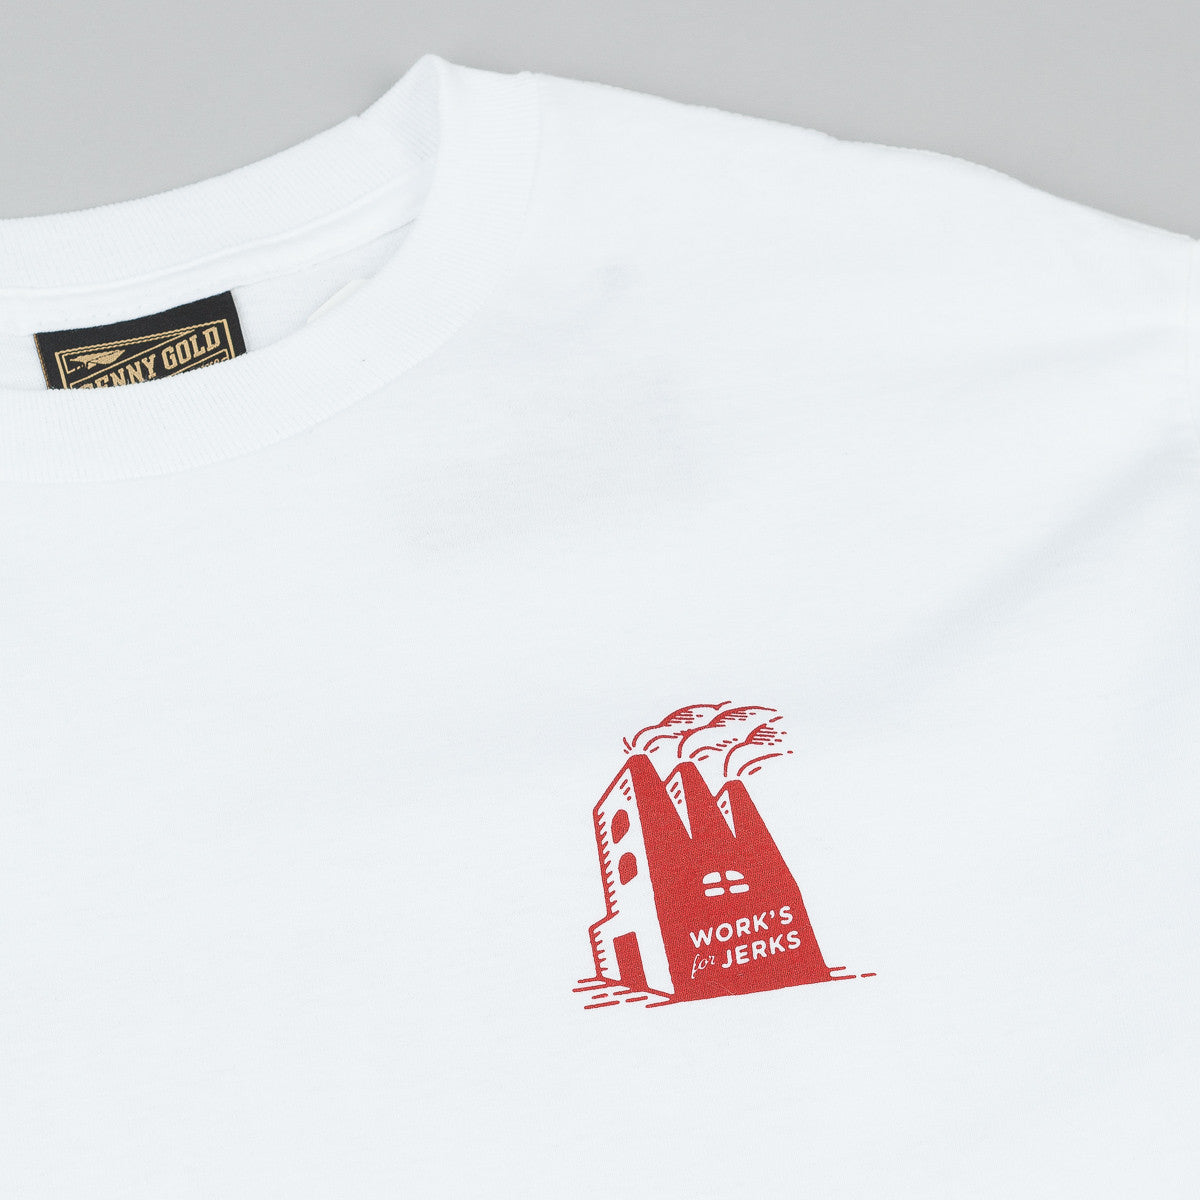 Benny Gold Factory Long Sleeve T-Shirt - White